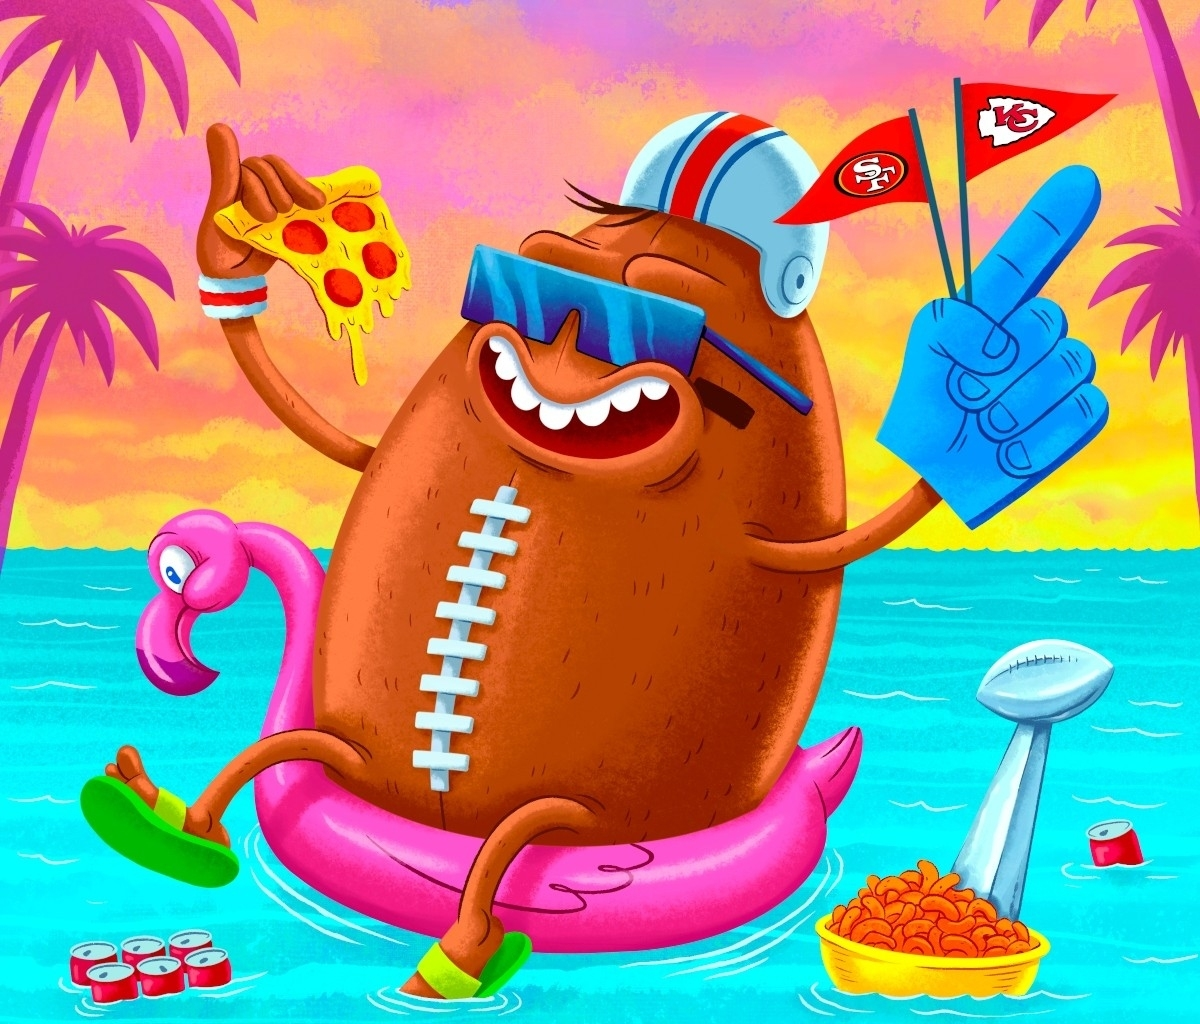 Miami Should Host The Super Bowl Every Year | Miami New Times inside Super Bowl In Miami Years